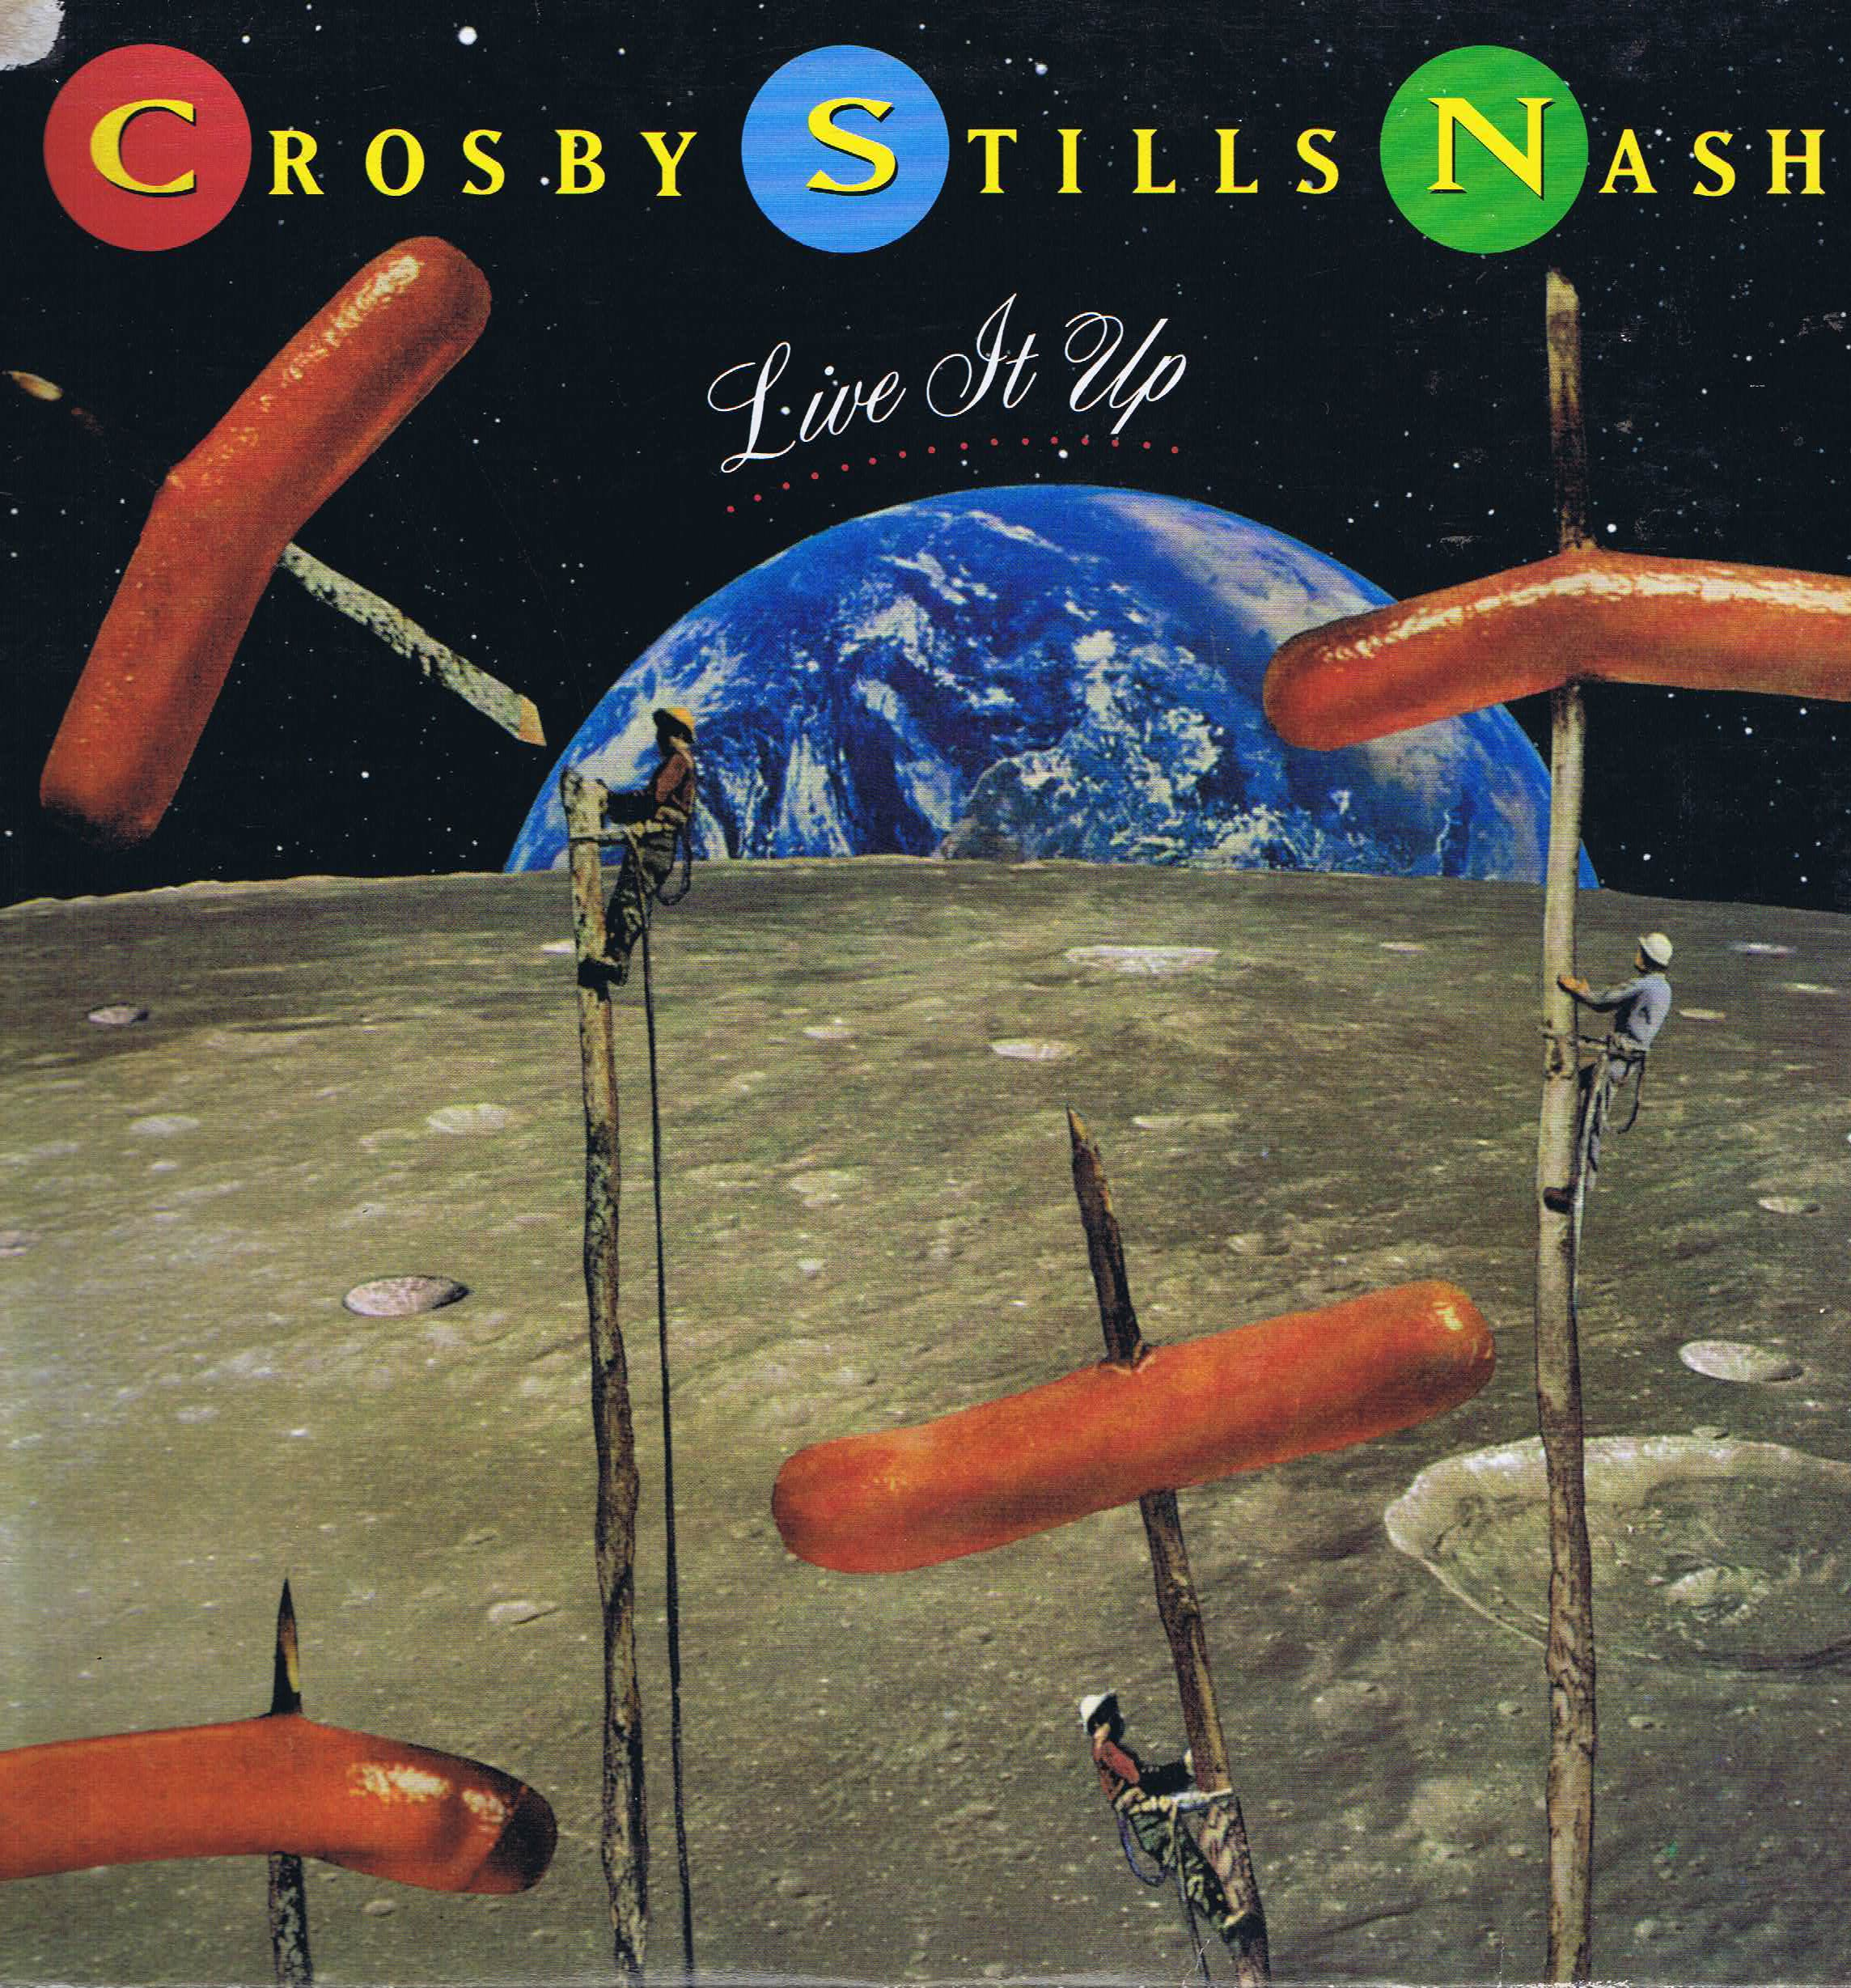 Album artwork for 'Live It Up' by Crosby, Stills, and Nash